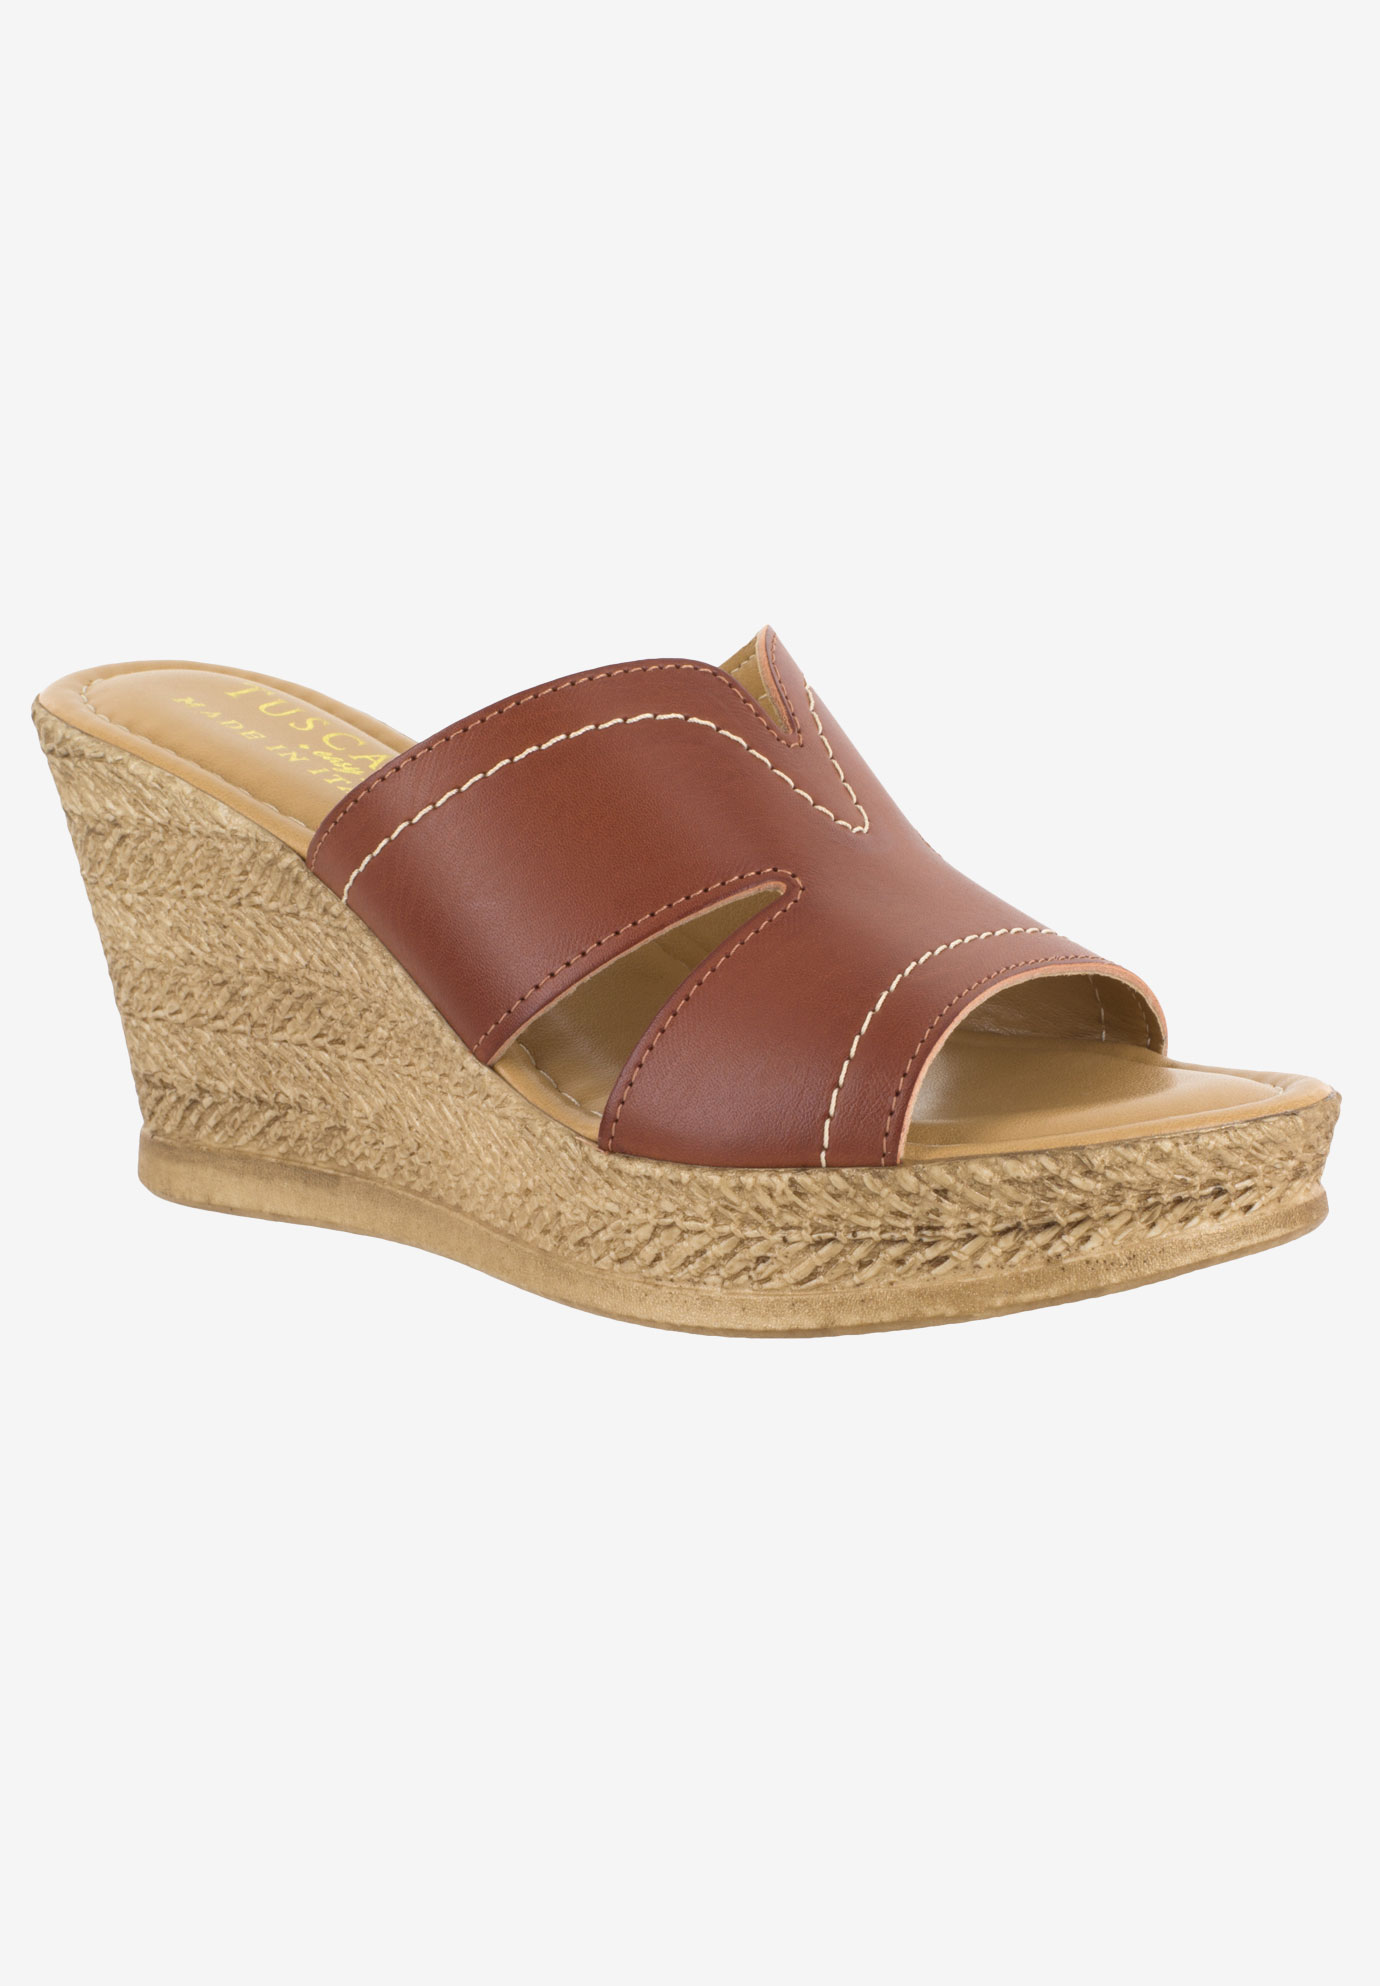 Marsala Wedge by Easy Street,